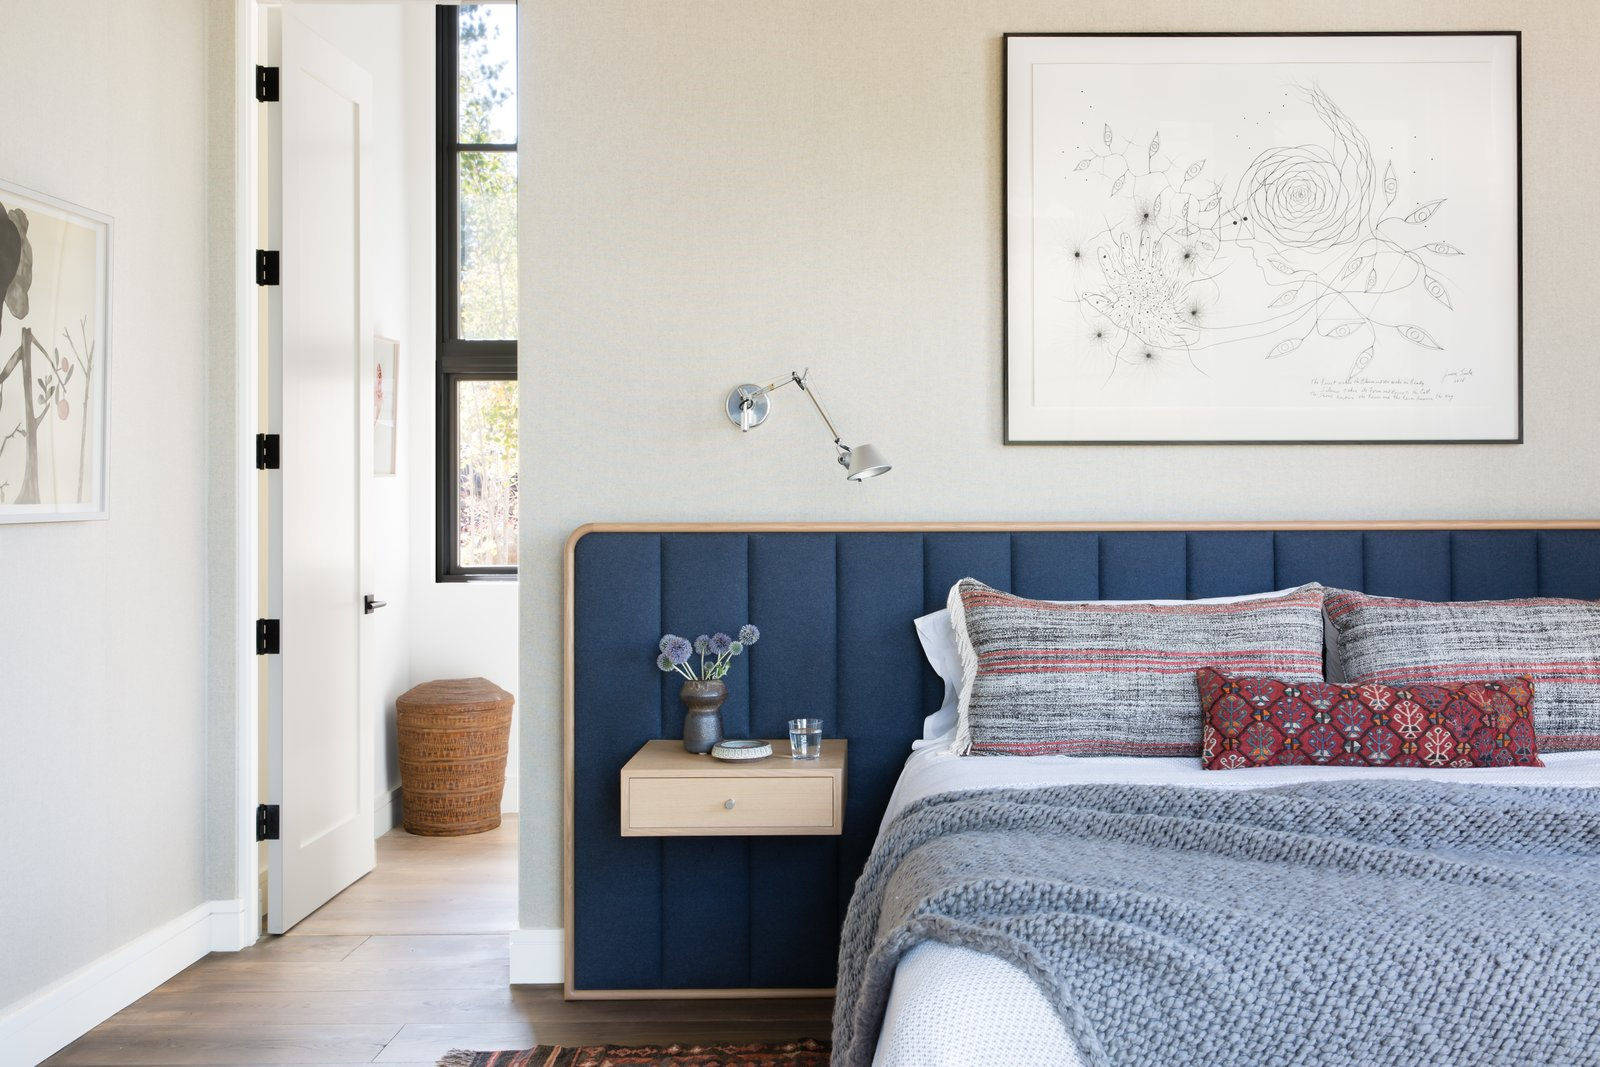 Bedroom, Bed, Medium Hardwood Floor, Wall Lighting, Night Stands, and Rug Floor The custom built-in bed and bedside tables are from ABD Studio. The art above the bed was commissioned from James Surls.   Photo 18 of 20 in A Sleek Lake Tahoe Retreat Shows Off an Impressive Art Collection